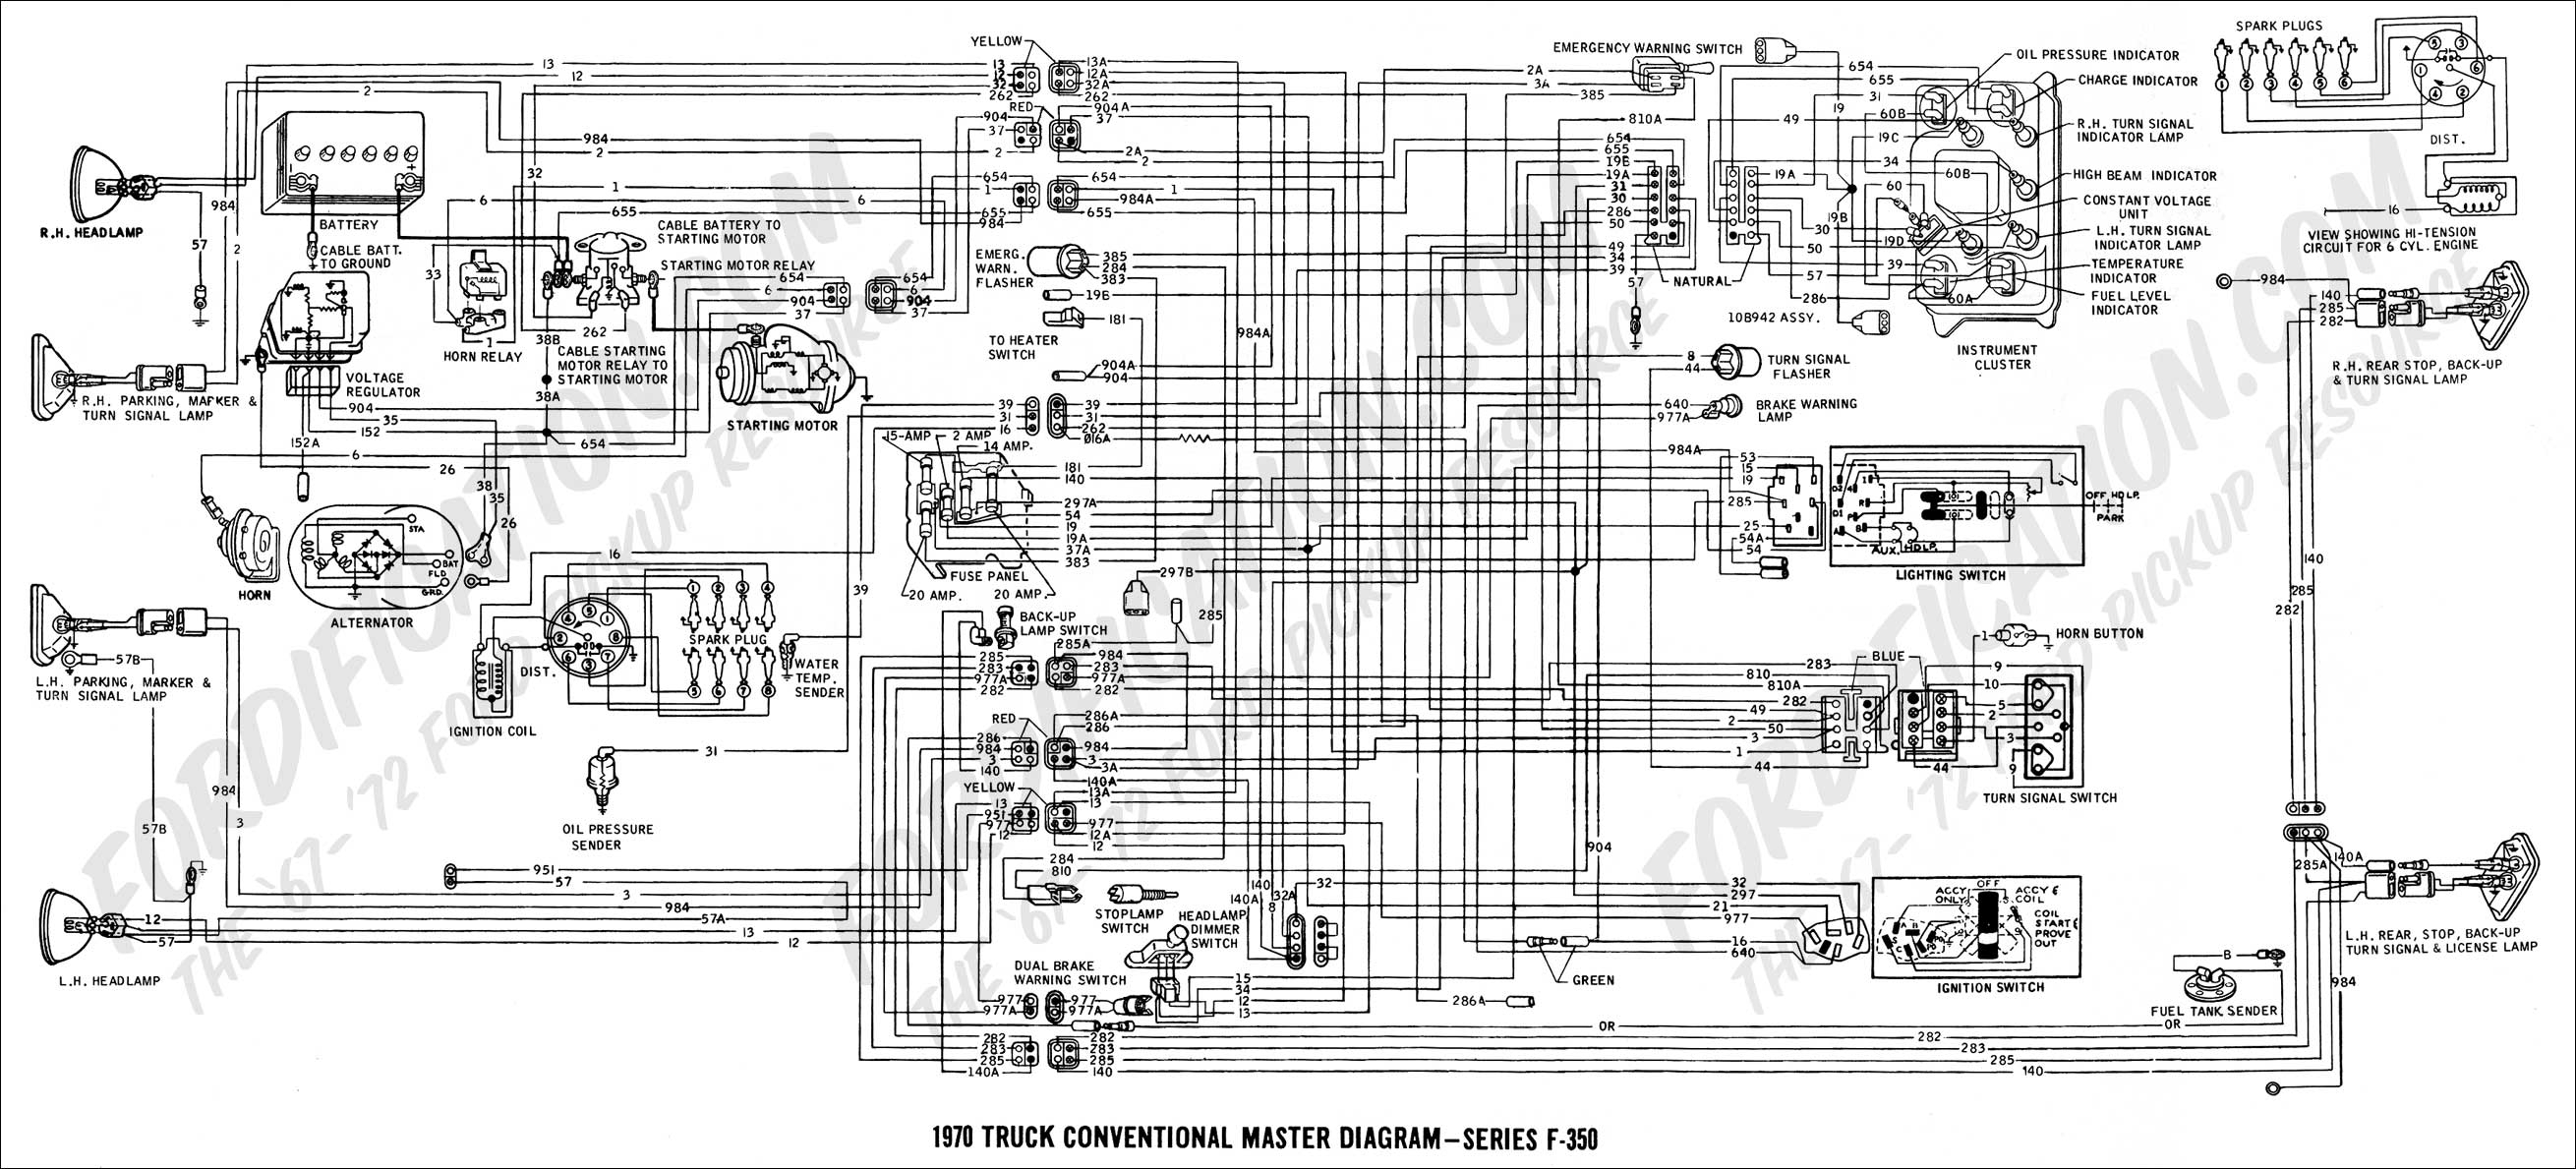 ford trailer wiring diagram Collection-Ford F250 Trailer Wiring Diagram 14-r